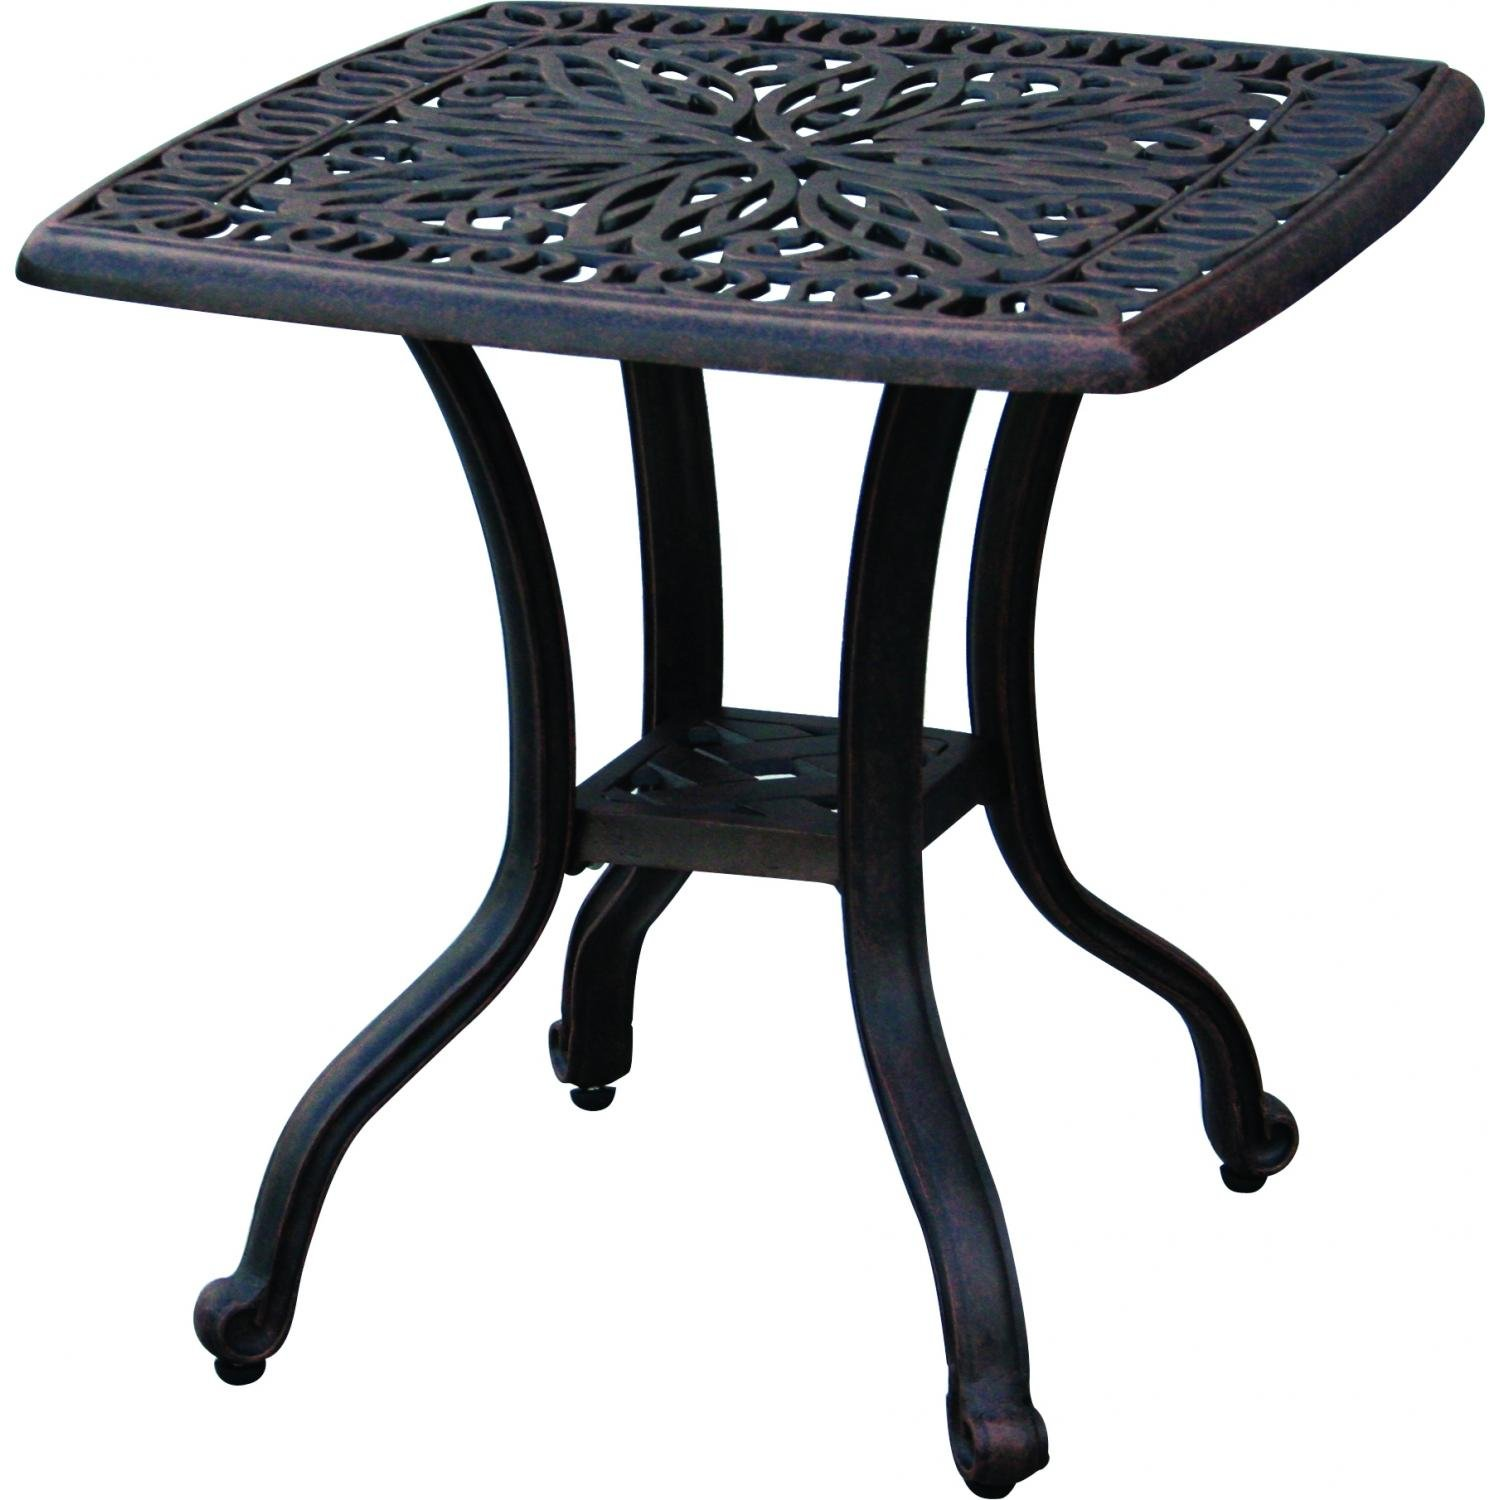 darlee elisabeth cast aluminum outdoor patio end table metal accent tables inch square antique bronze side garden ott chair solid cherry wood dining white with drawer mint good